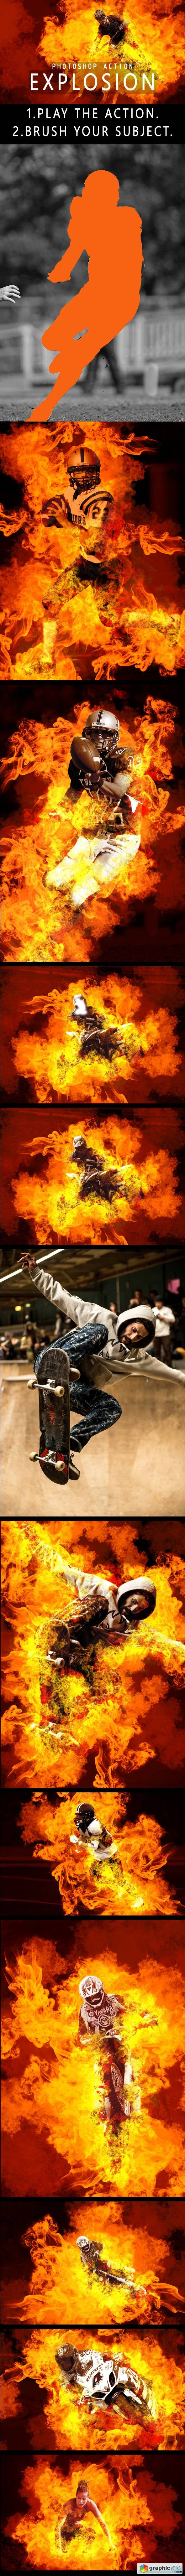 Explosion Photoshop Action 20684962